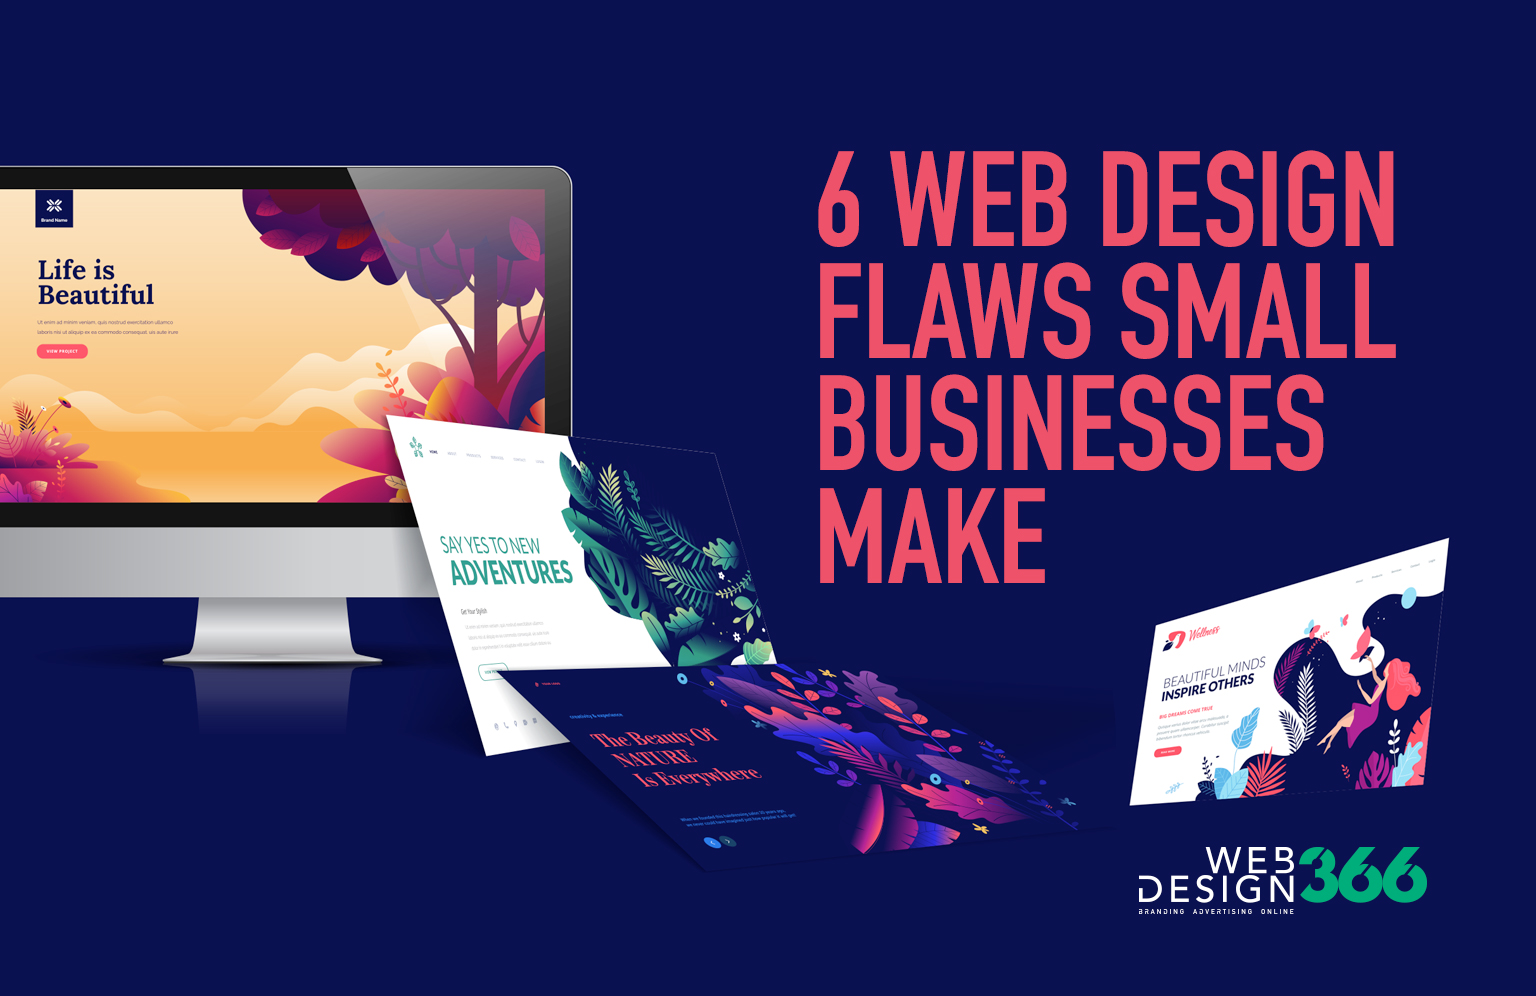 6 Web Design Flaws Small Businesses Make